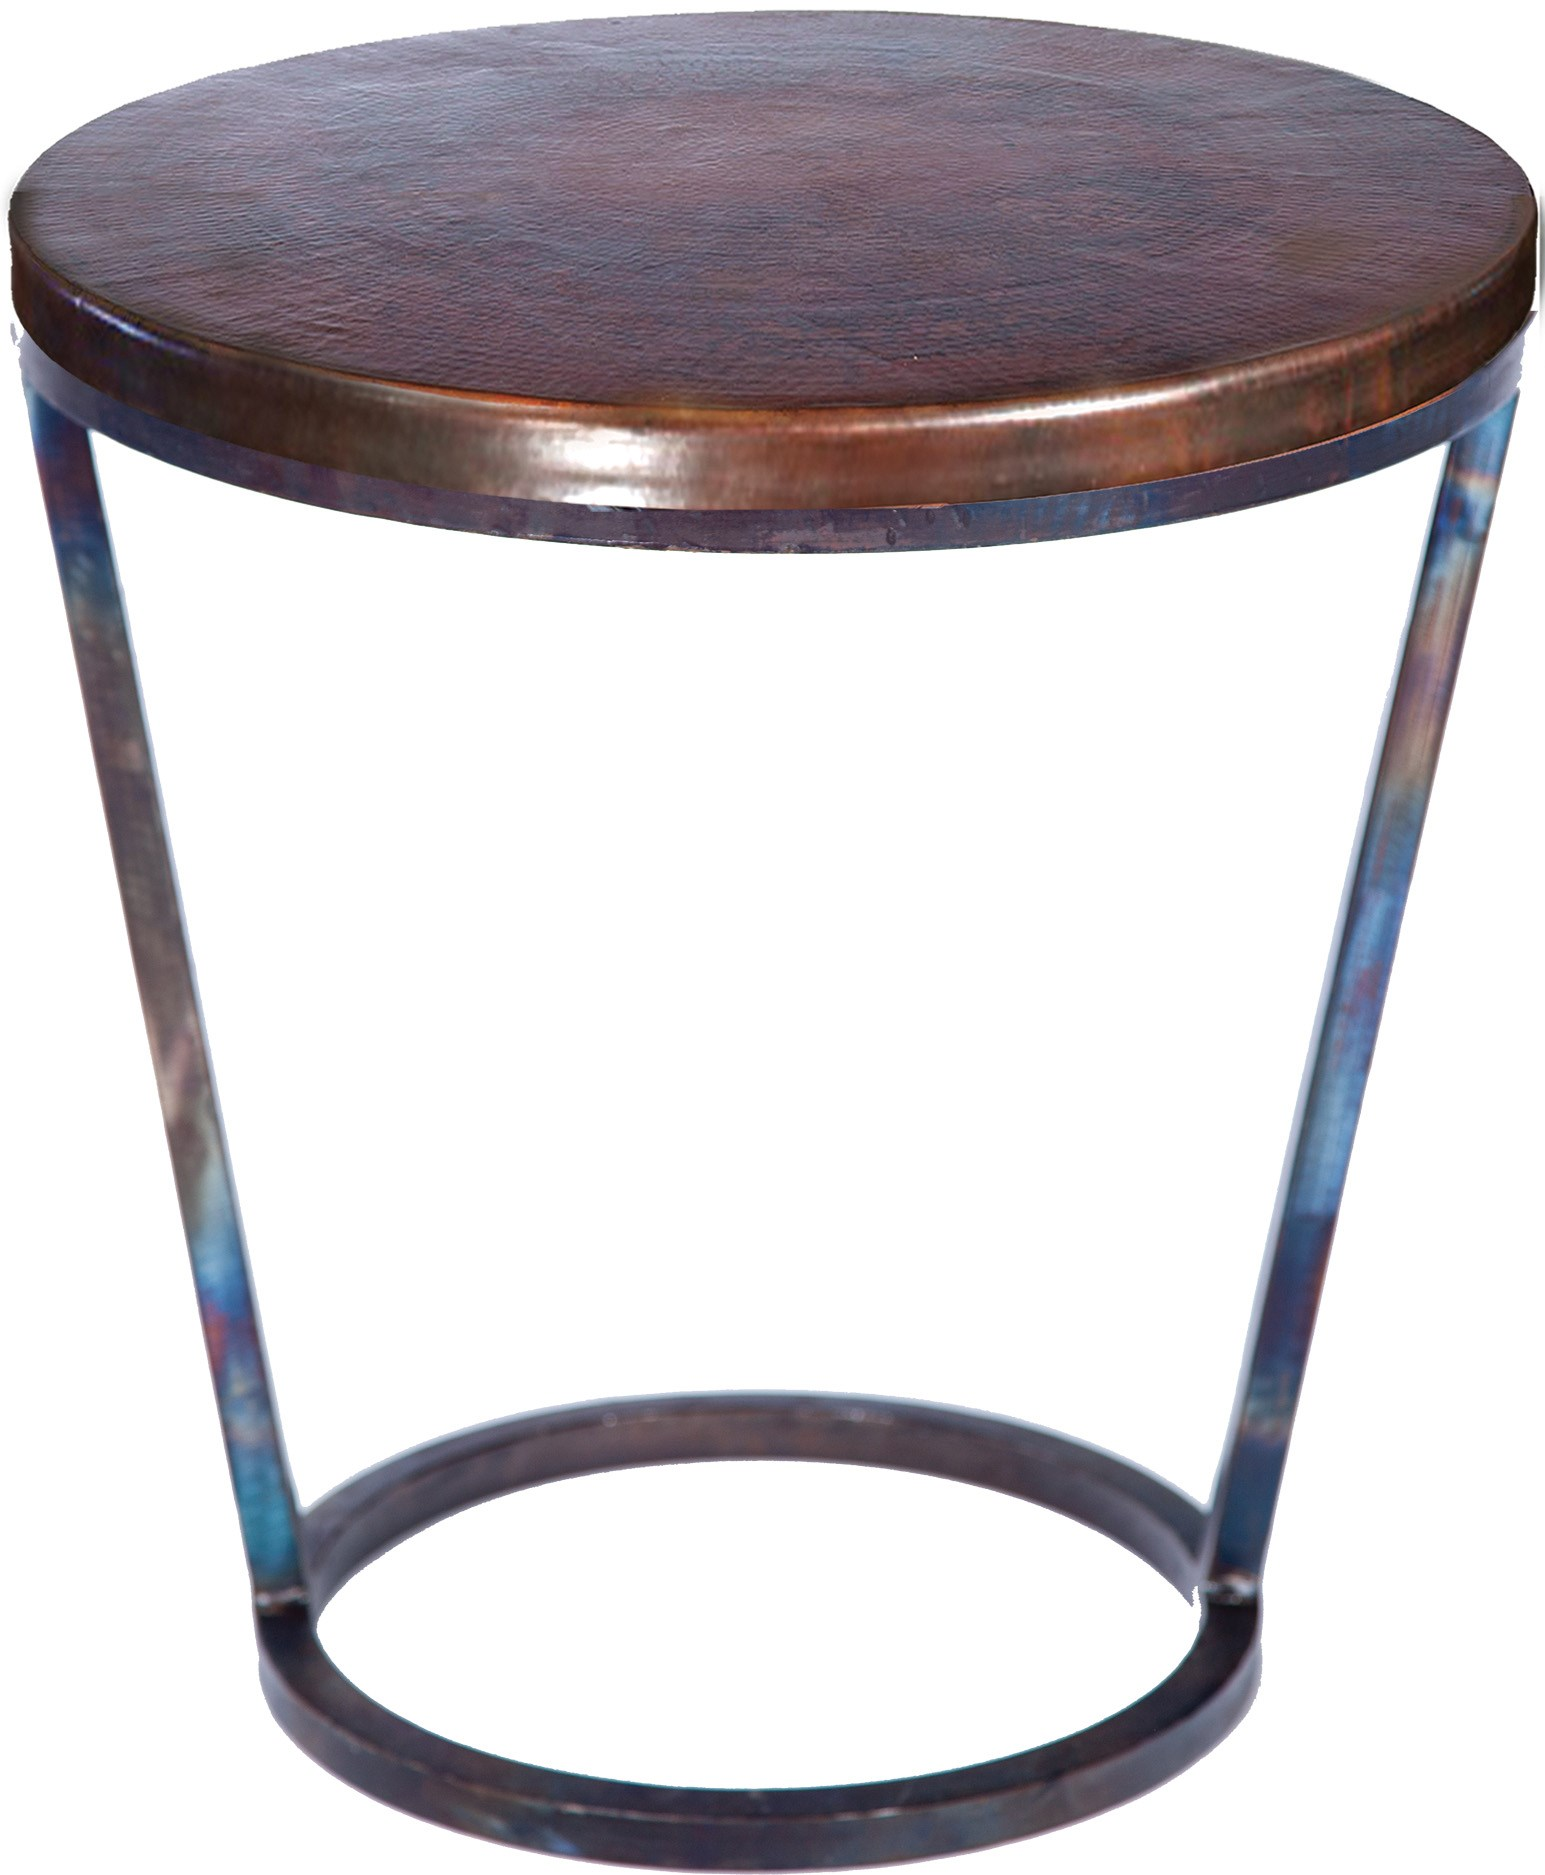 Accent Table With Dark Brown Hammered Copper Top Boulevard Urban - Copper top accent table